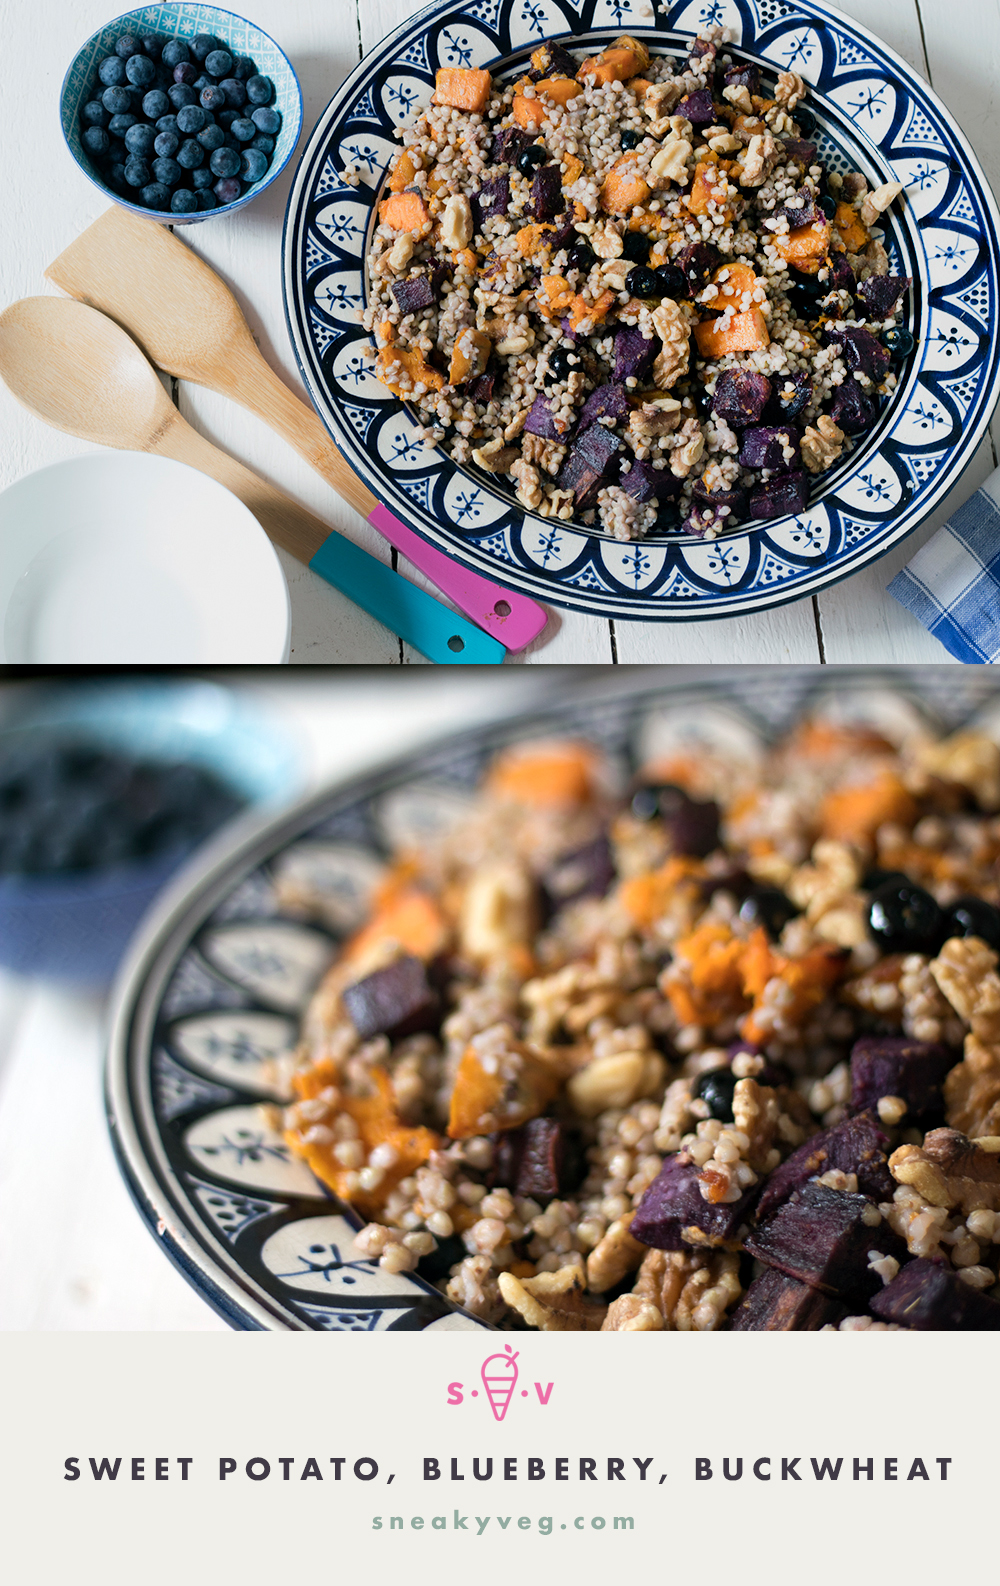 Roasted sweet potato salad with blueberries, buckwheat and toasted walnuts